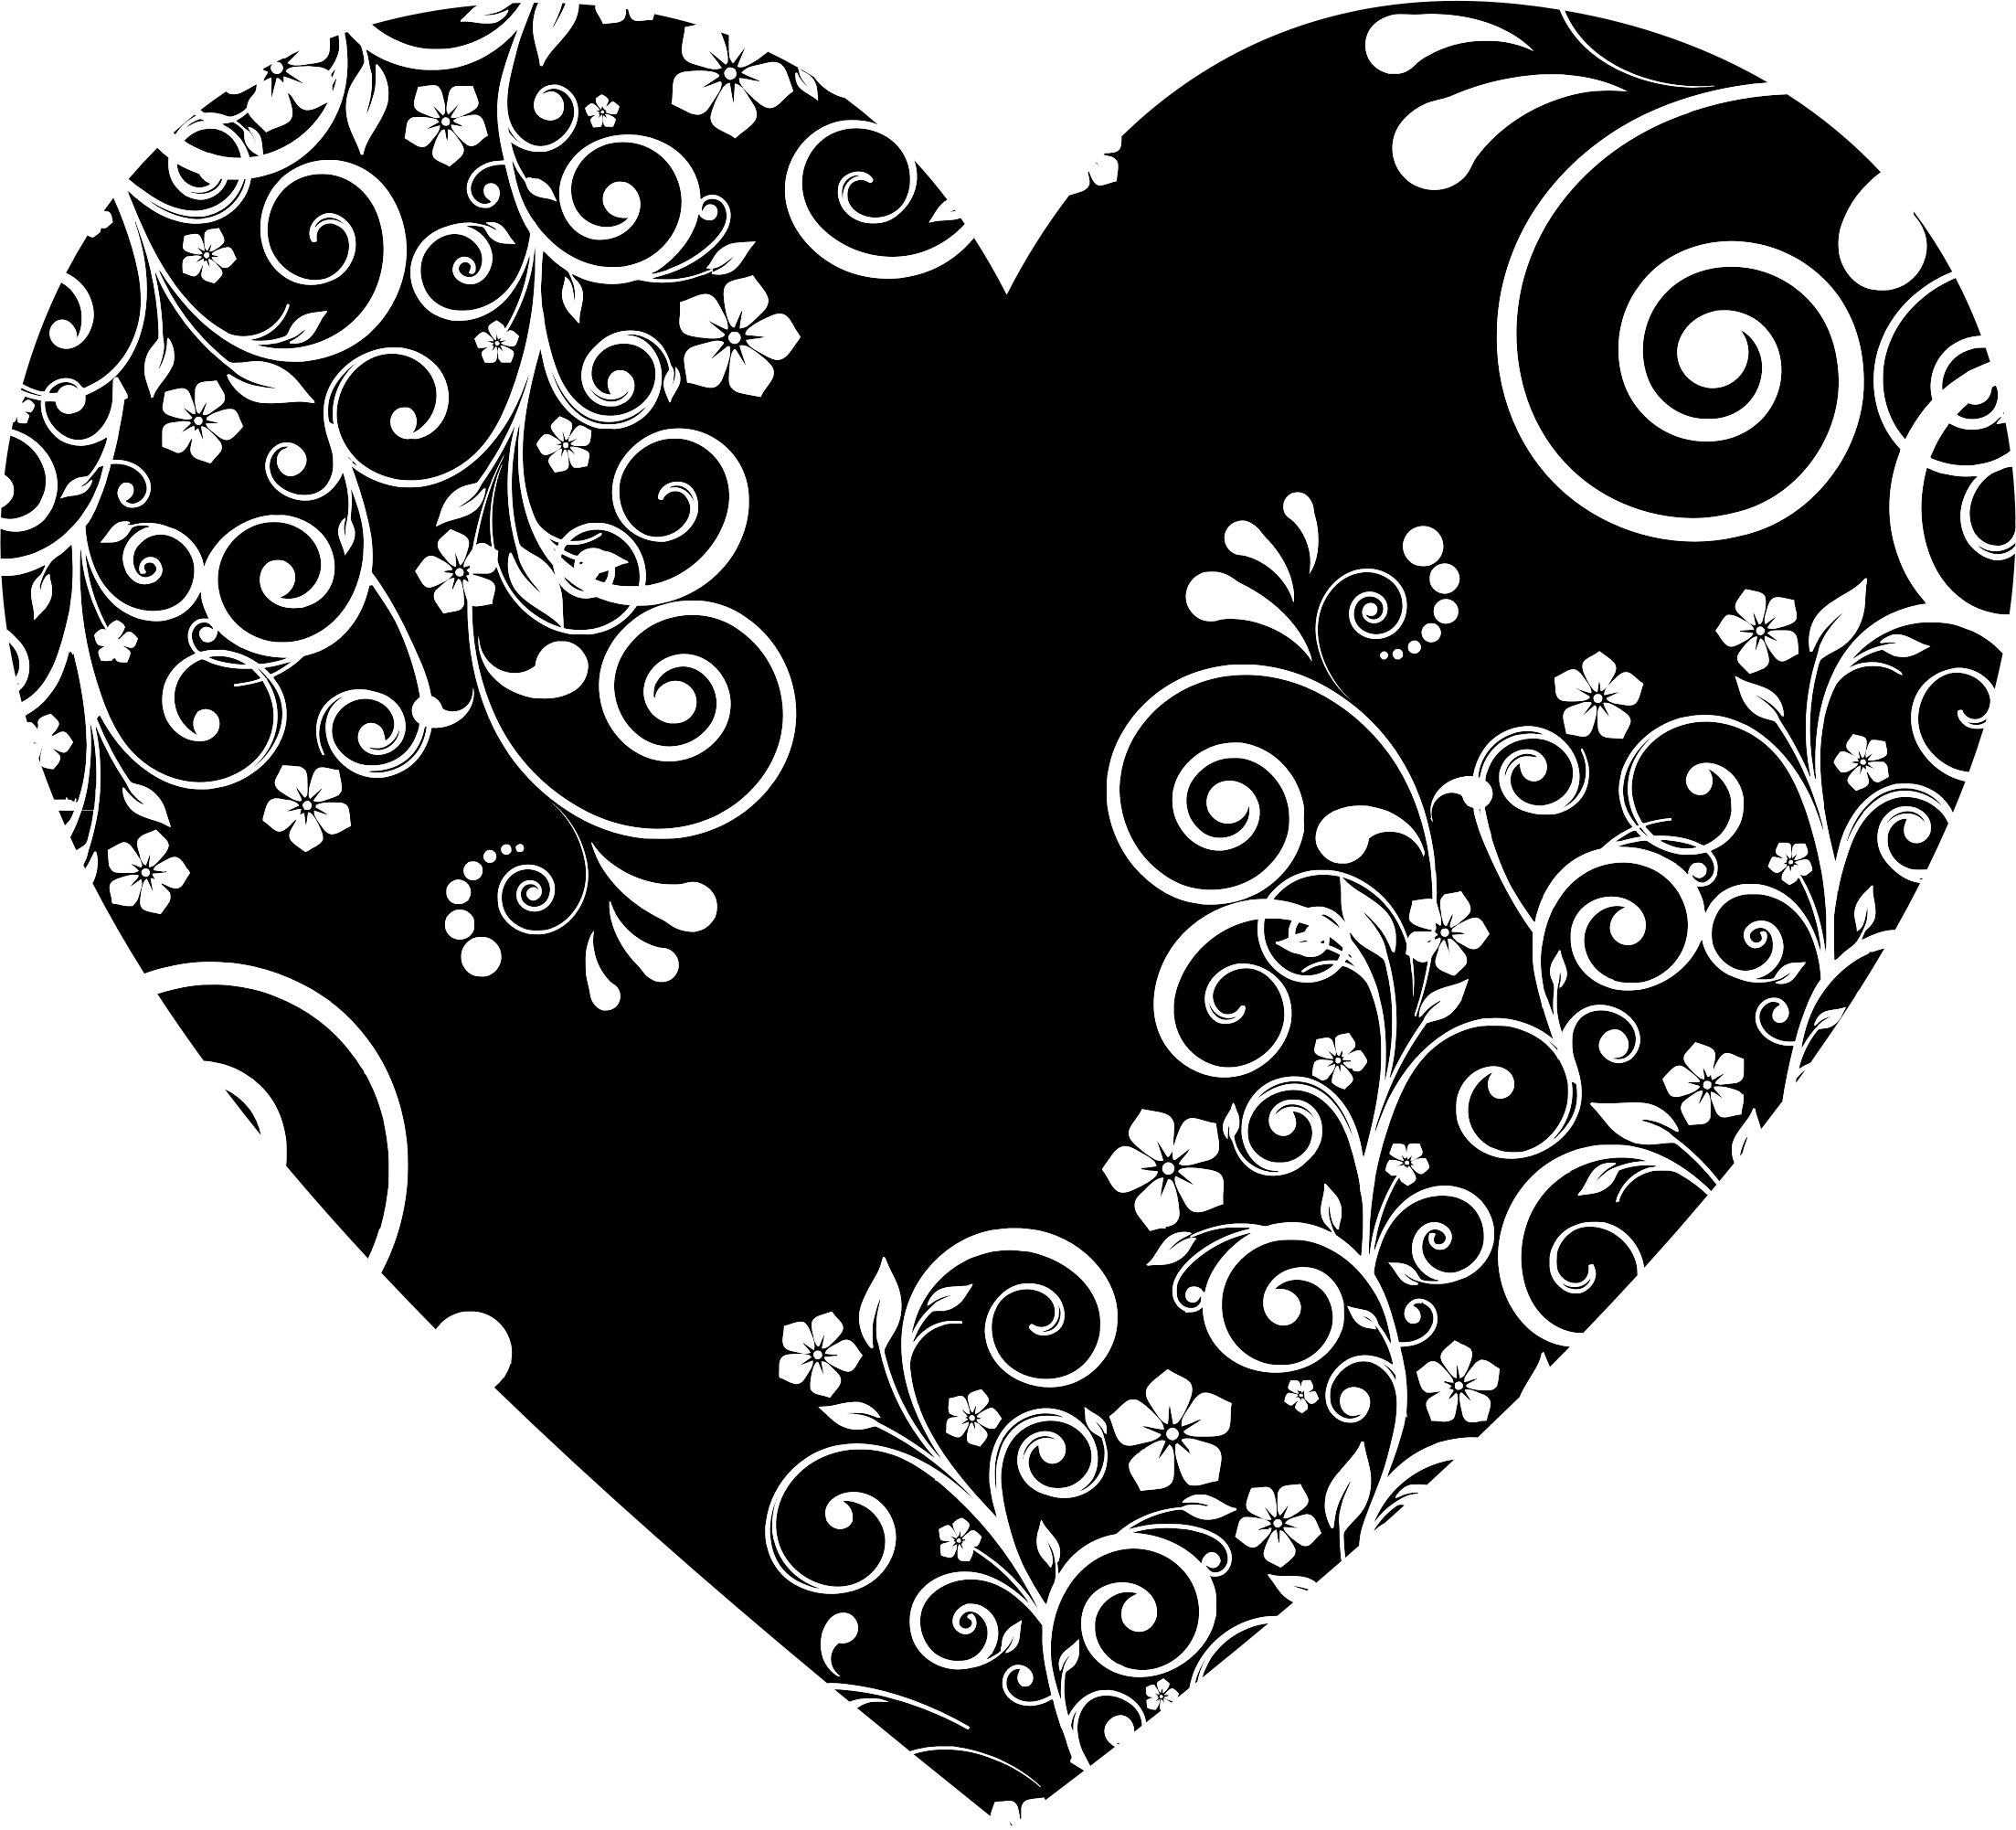 Paisley heart clipart clipart royalty free Clipart - Floral Flourish Heart 3 clipart royalty free